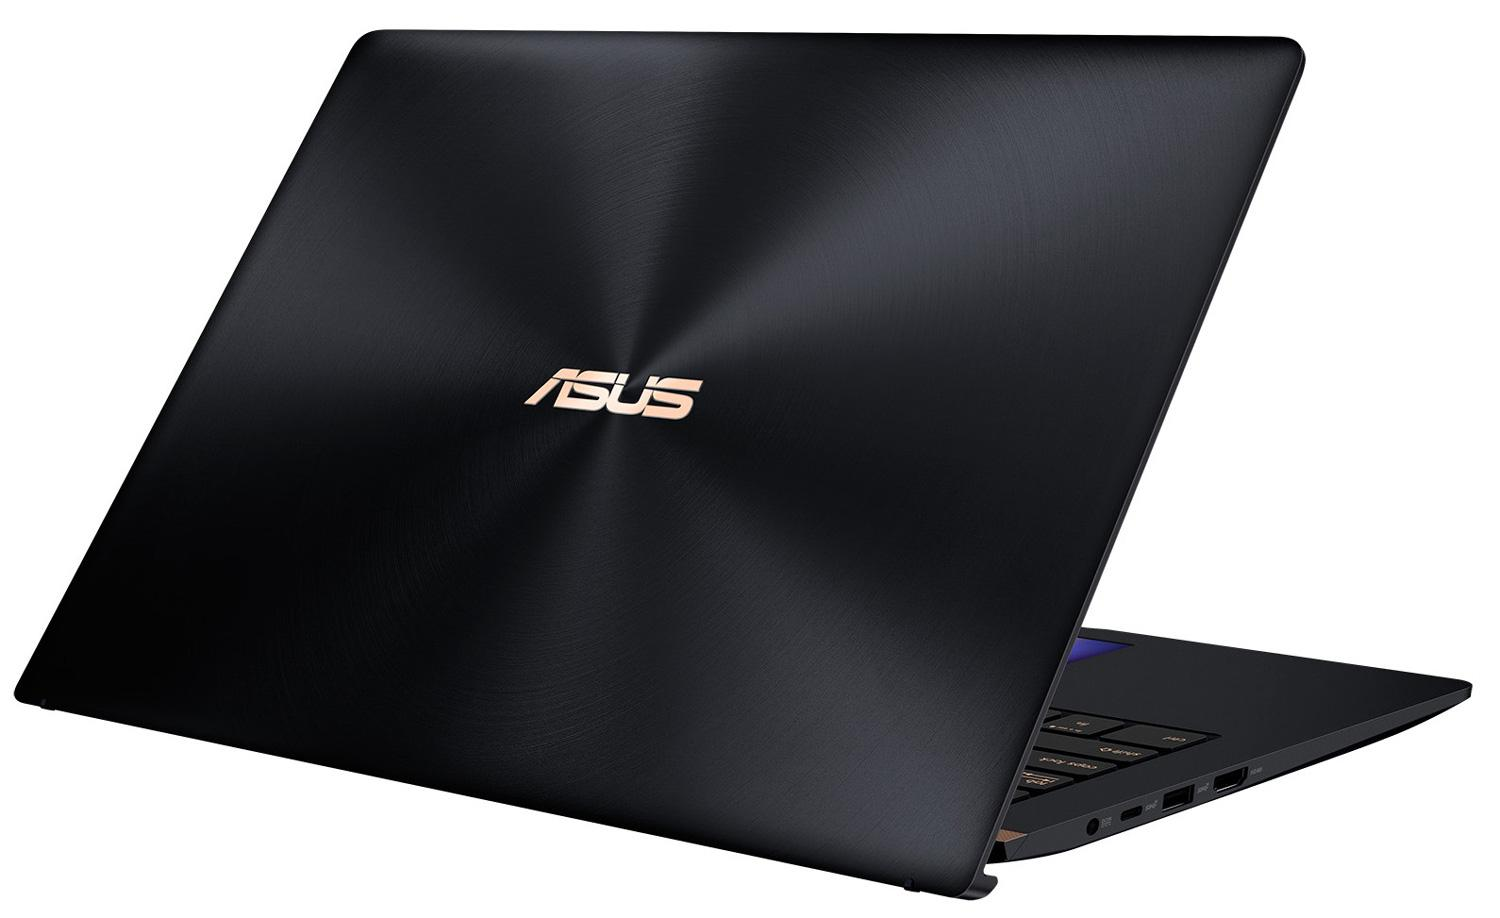 Ordinateur portable Asus ZenBook Pro UX480FD-BE068T - GTX 1050 Max-Q, ScreenPad, Whiskey Lake - photo 5